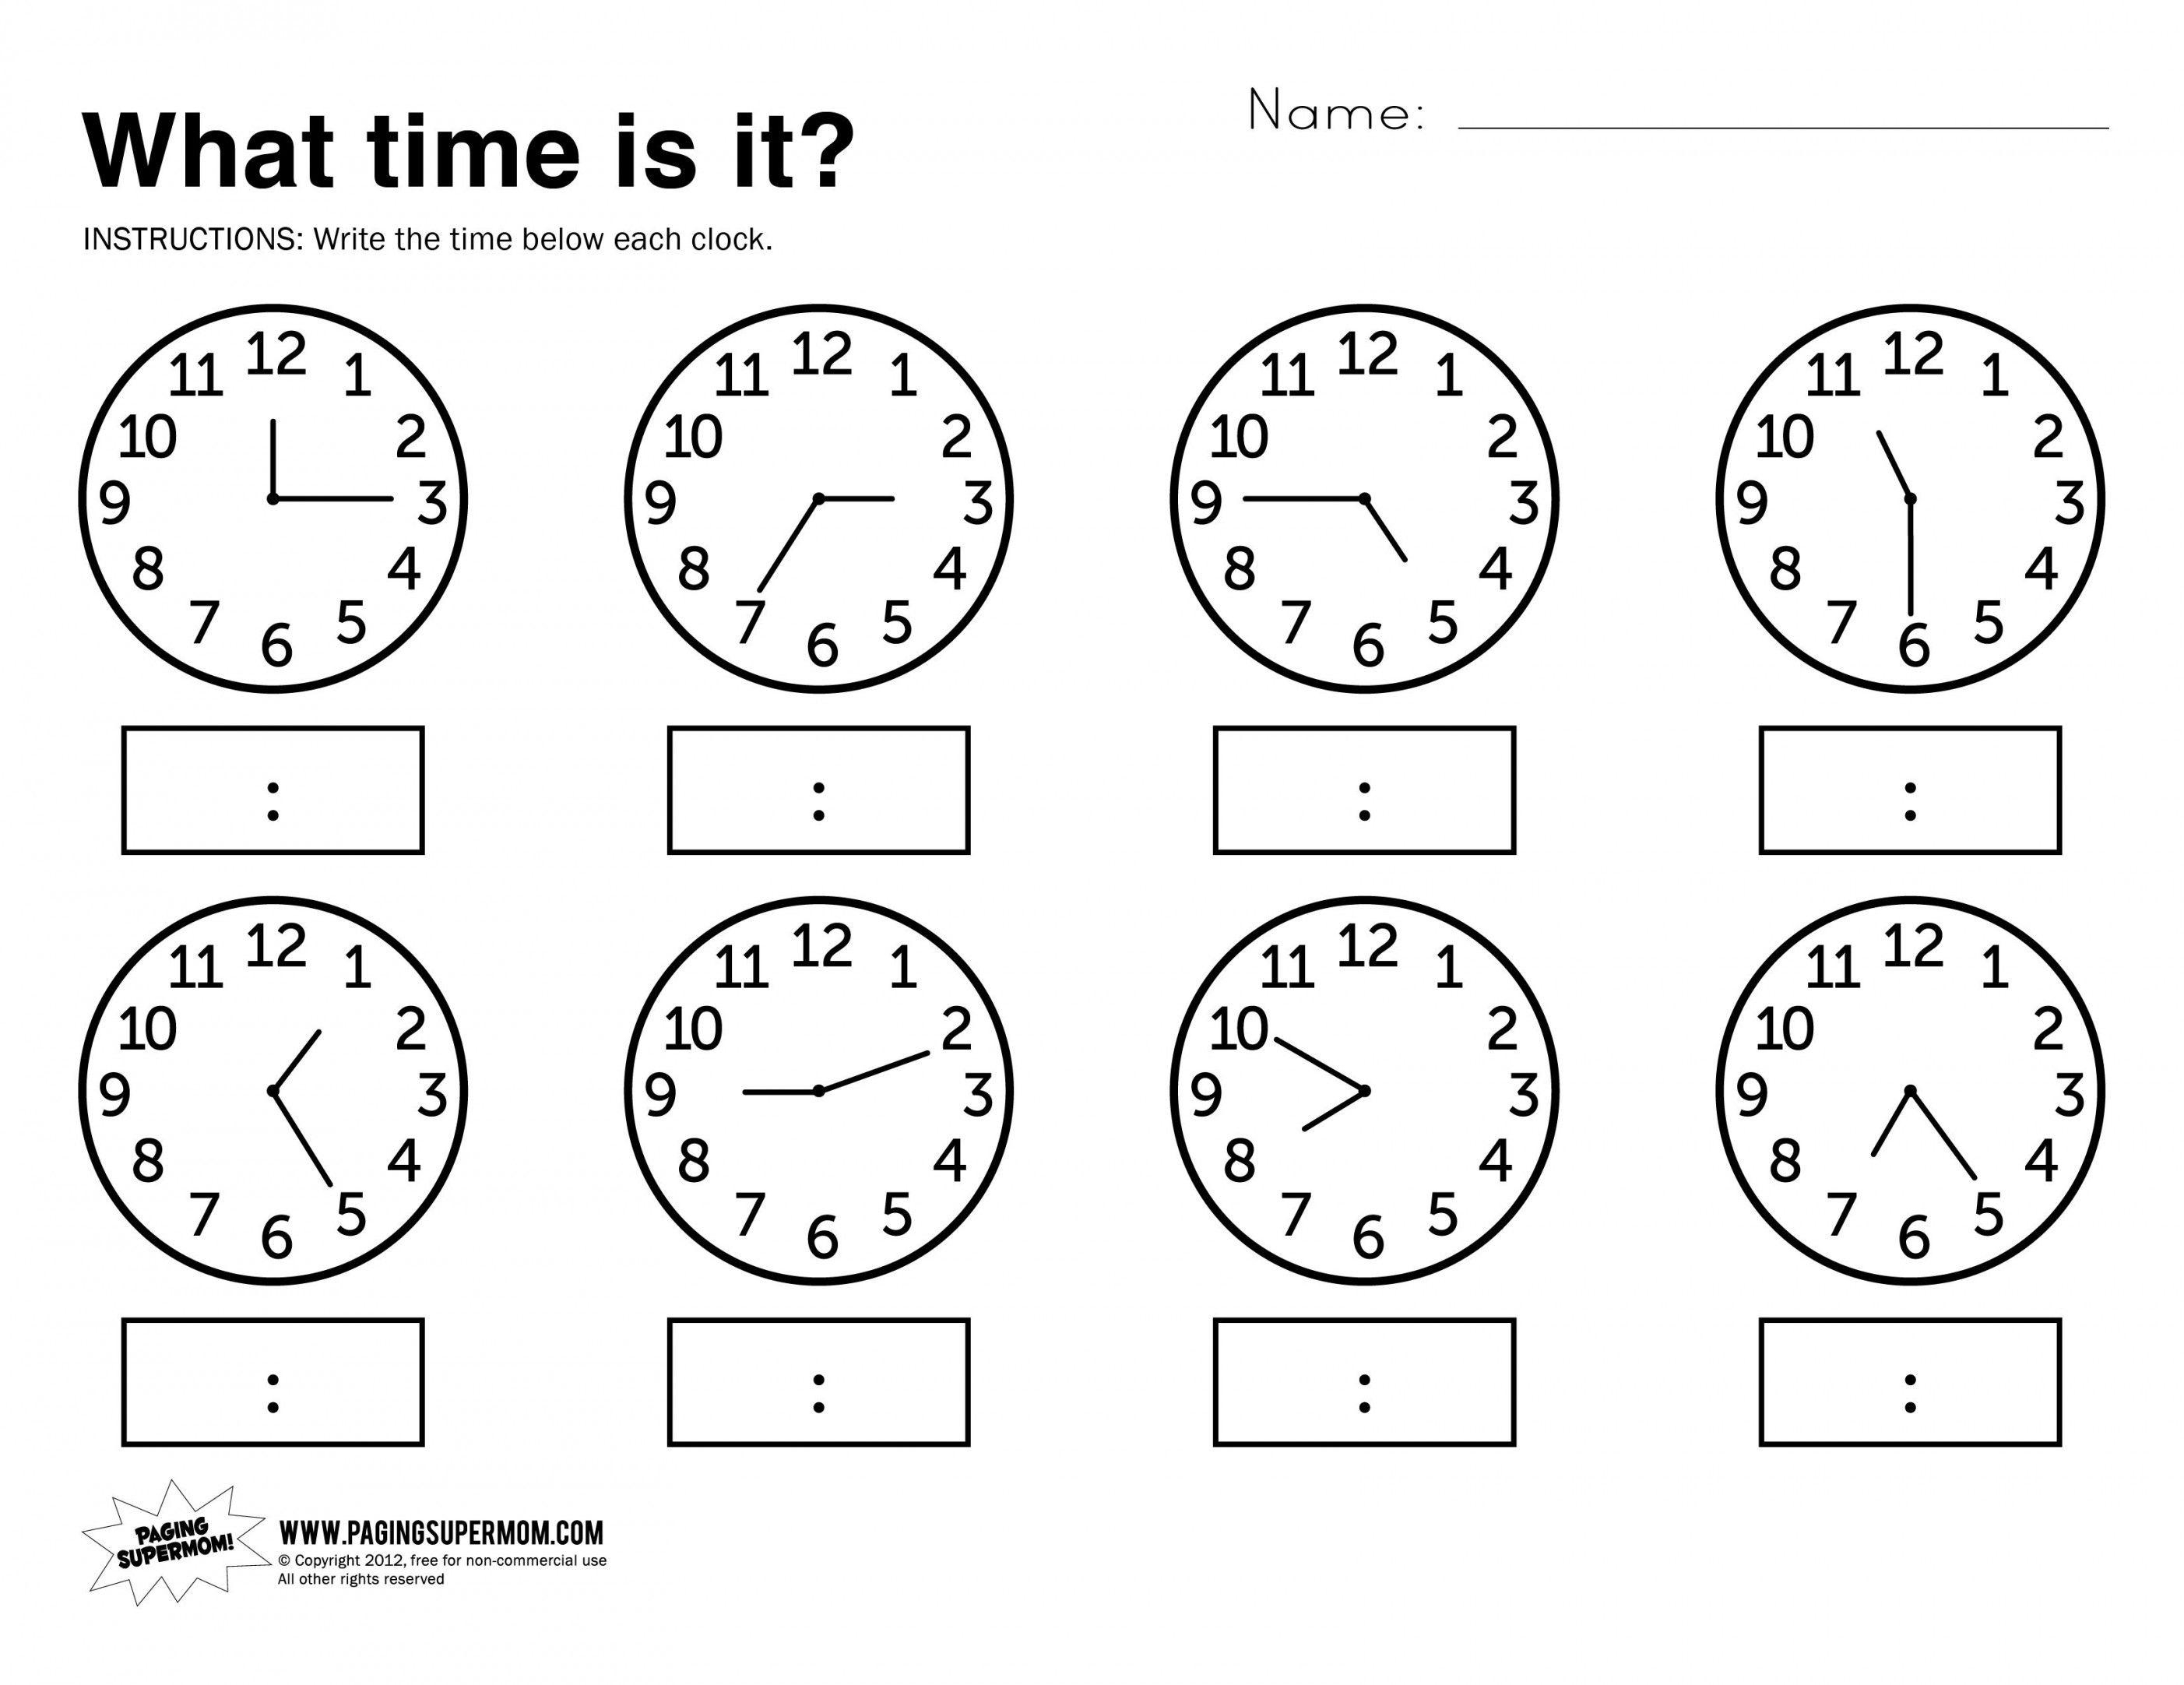 Telling Time Worksheets Grade 3 | Lostranquillos - Free Printable Time Worksheets For Grade 3